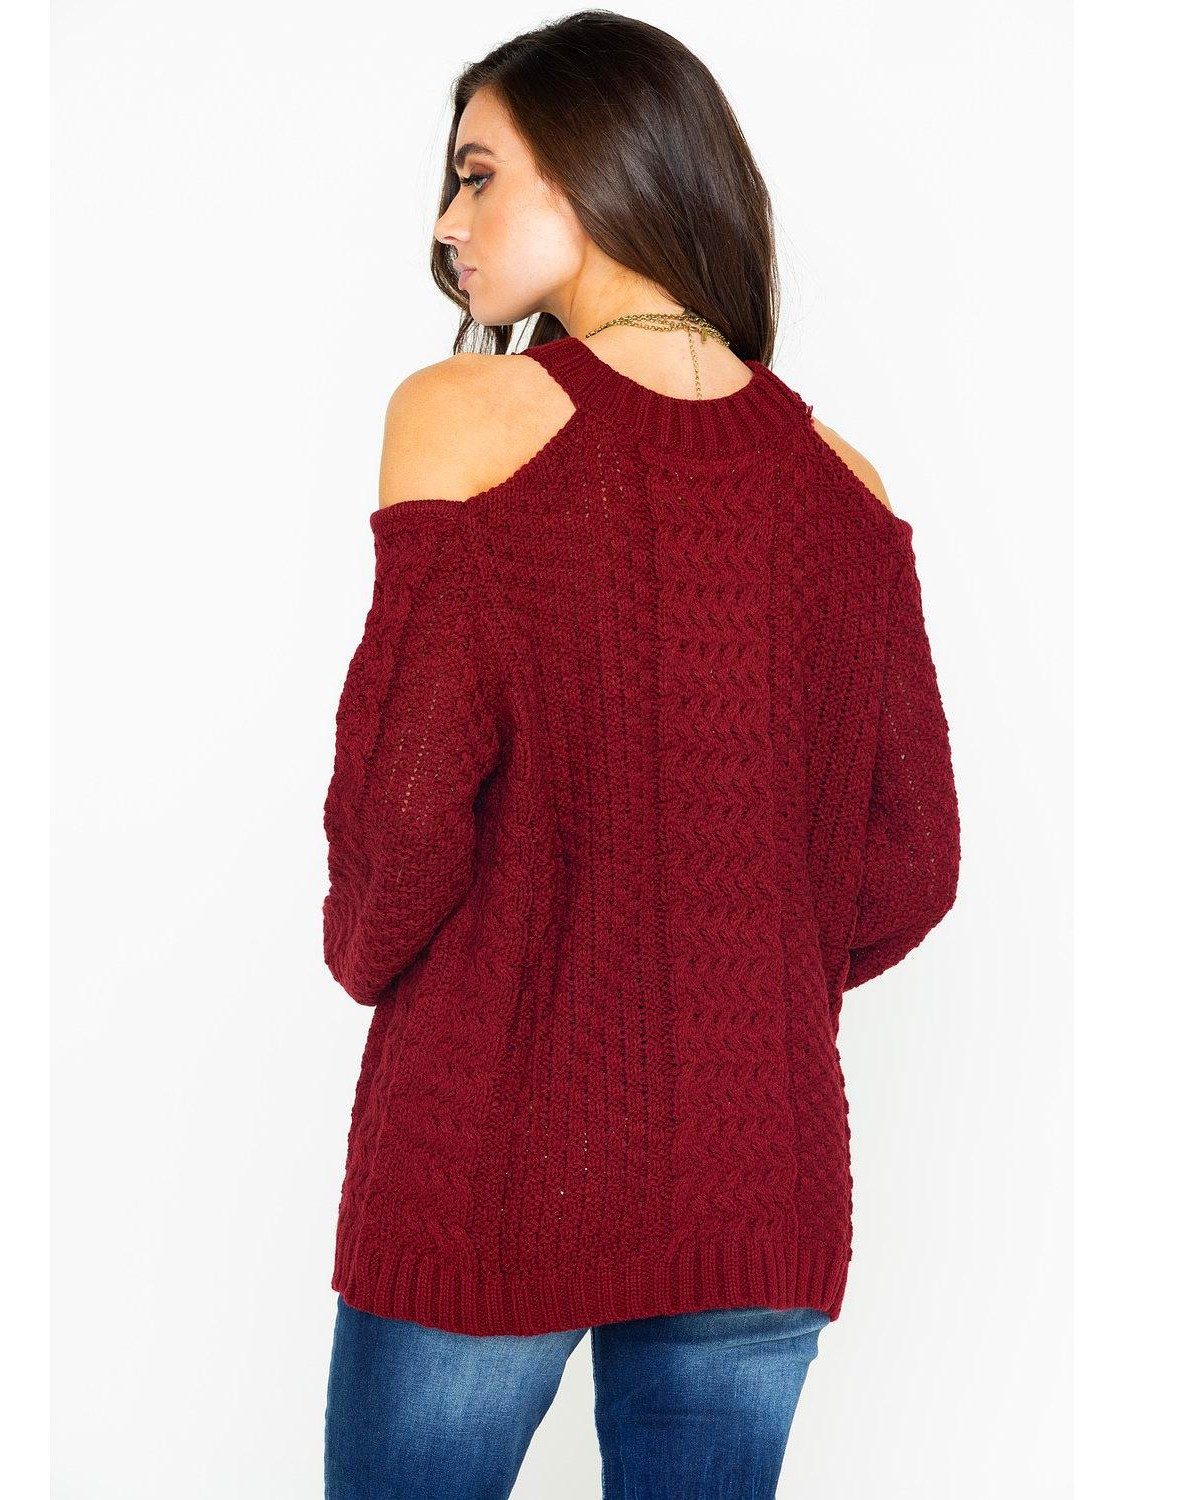 b7761768add2e2 Elan Women s Cold Shoulder Keyhole Cable Knit Sweater - Country ...